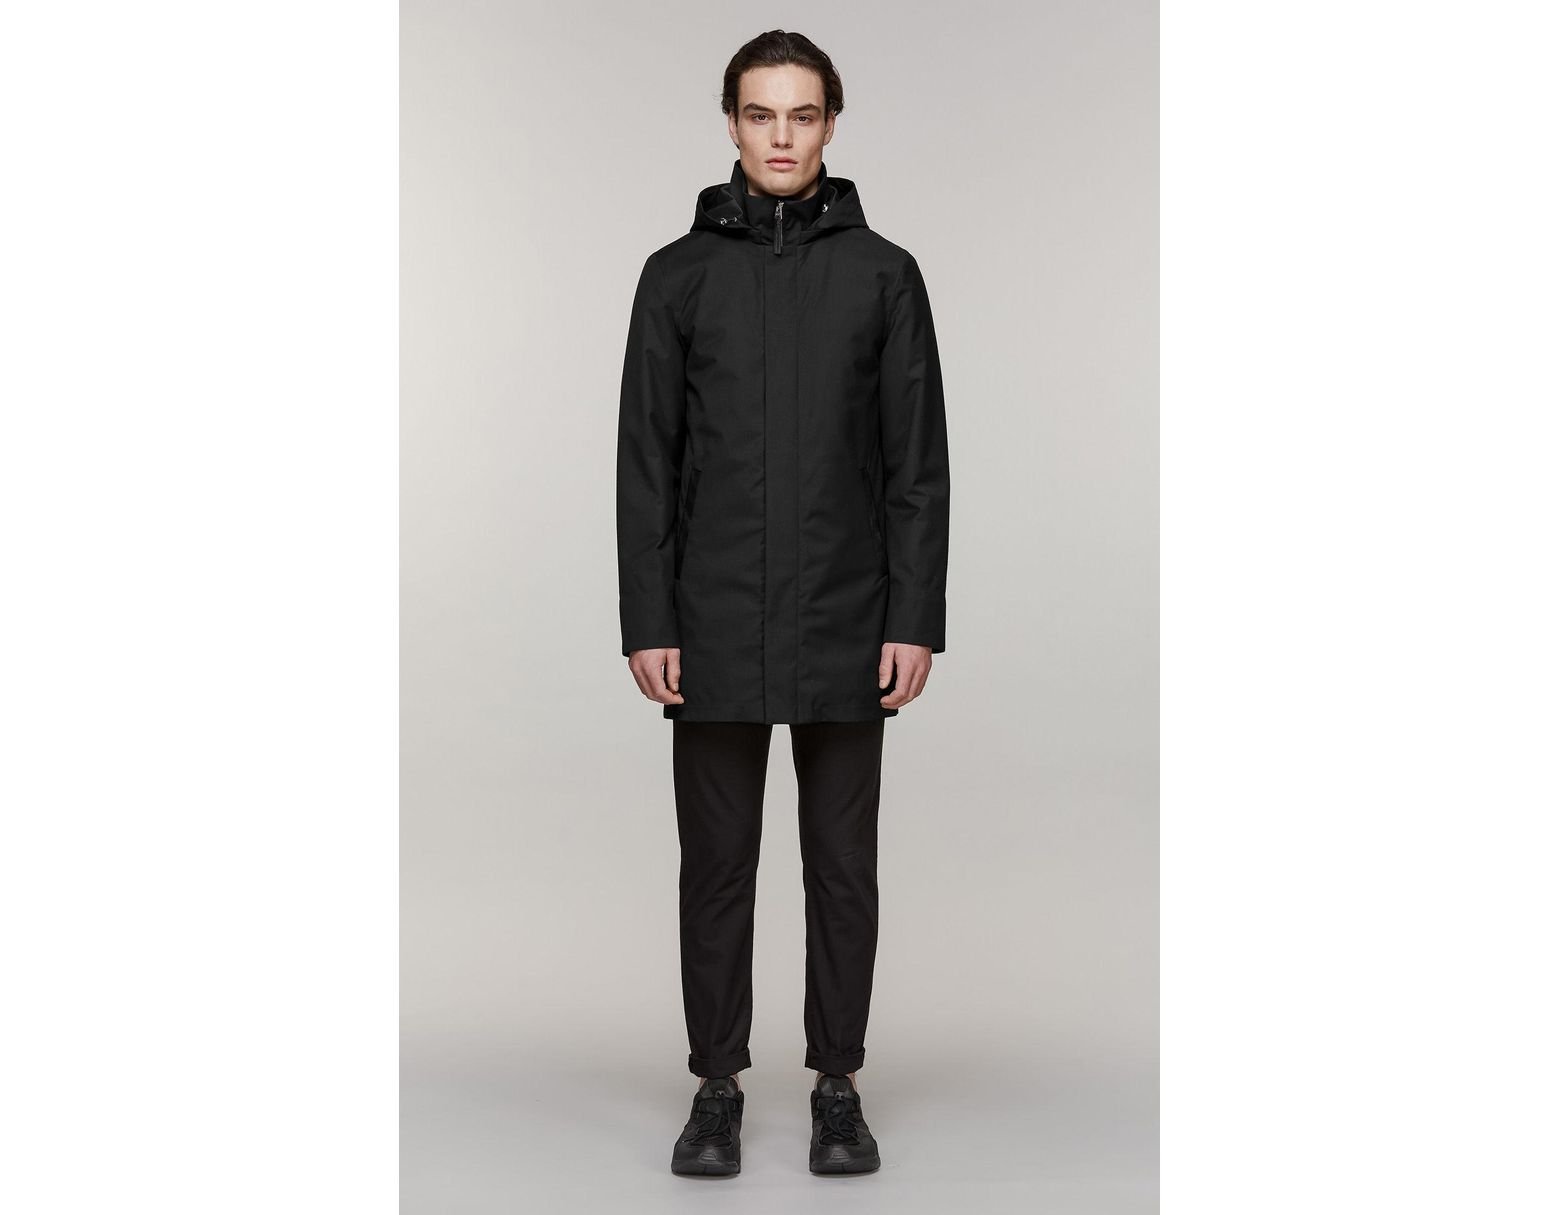 6921d466e4a Mackage Thorin-z 2-in-1 Twill Trench Coat With Removable Down Liner In  Black - 36 in Black for Men - Lyst